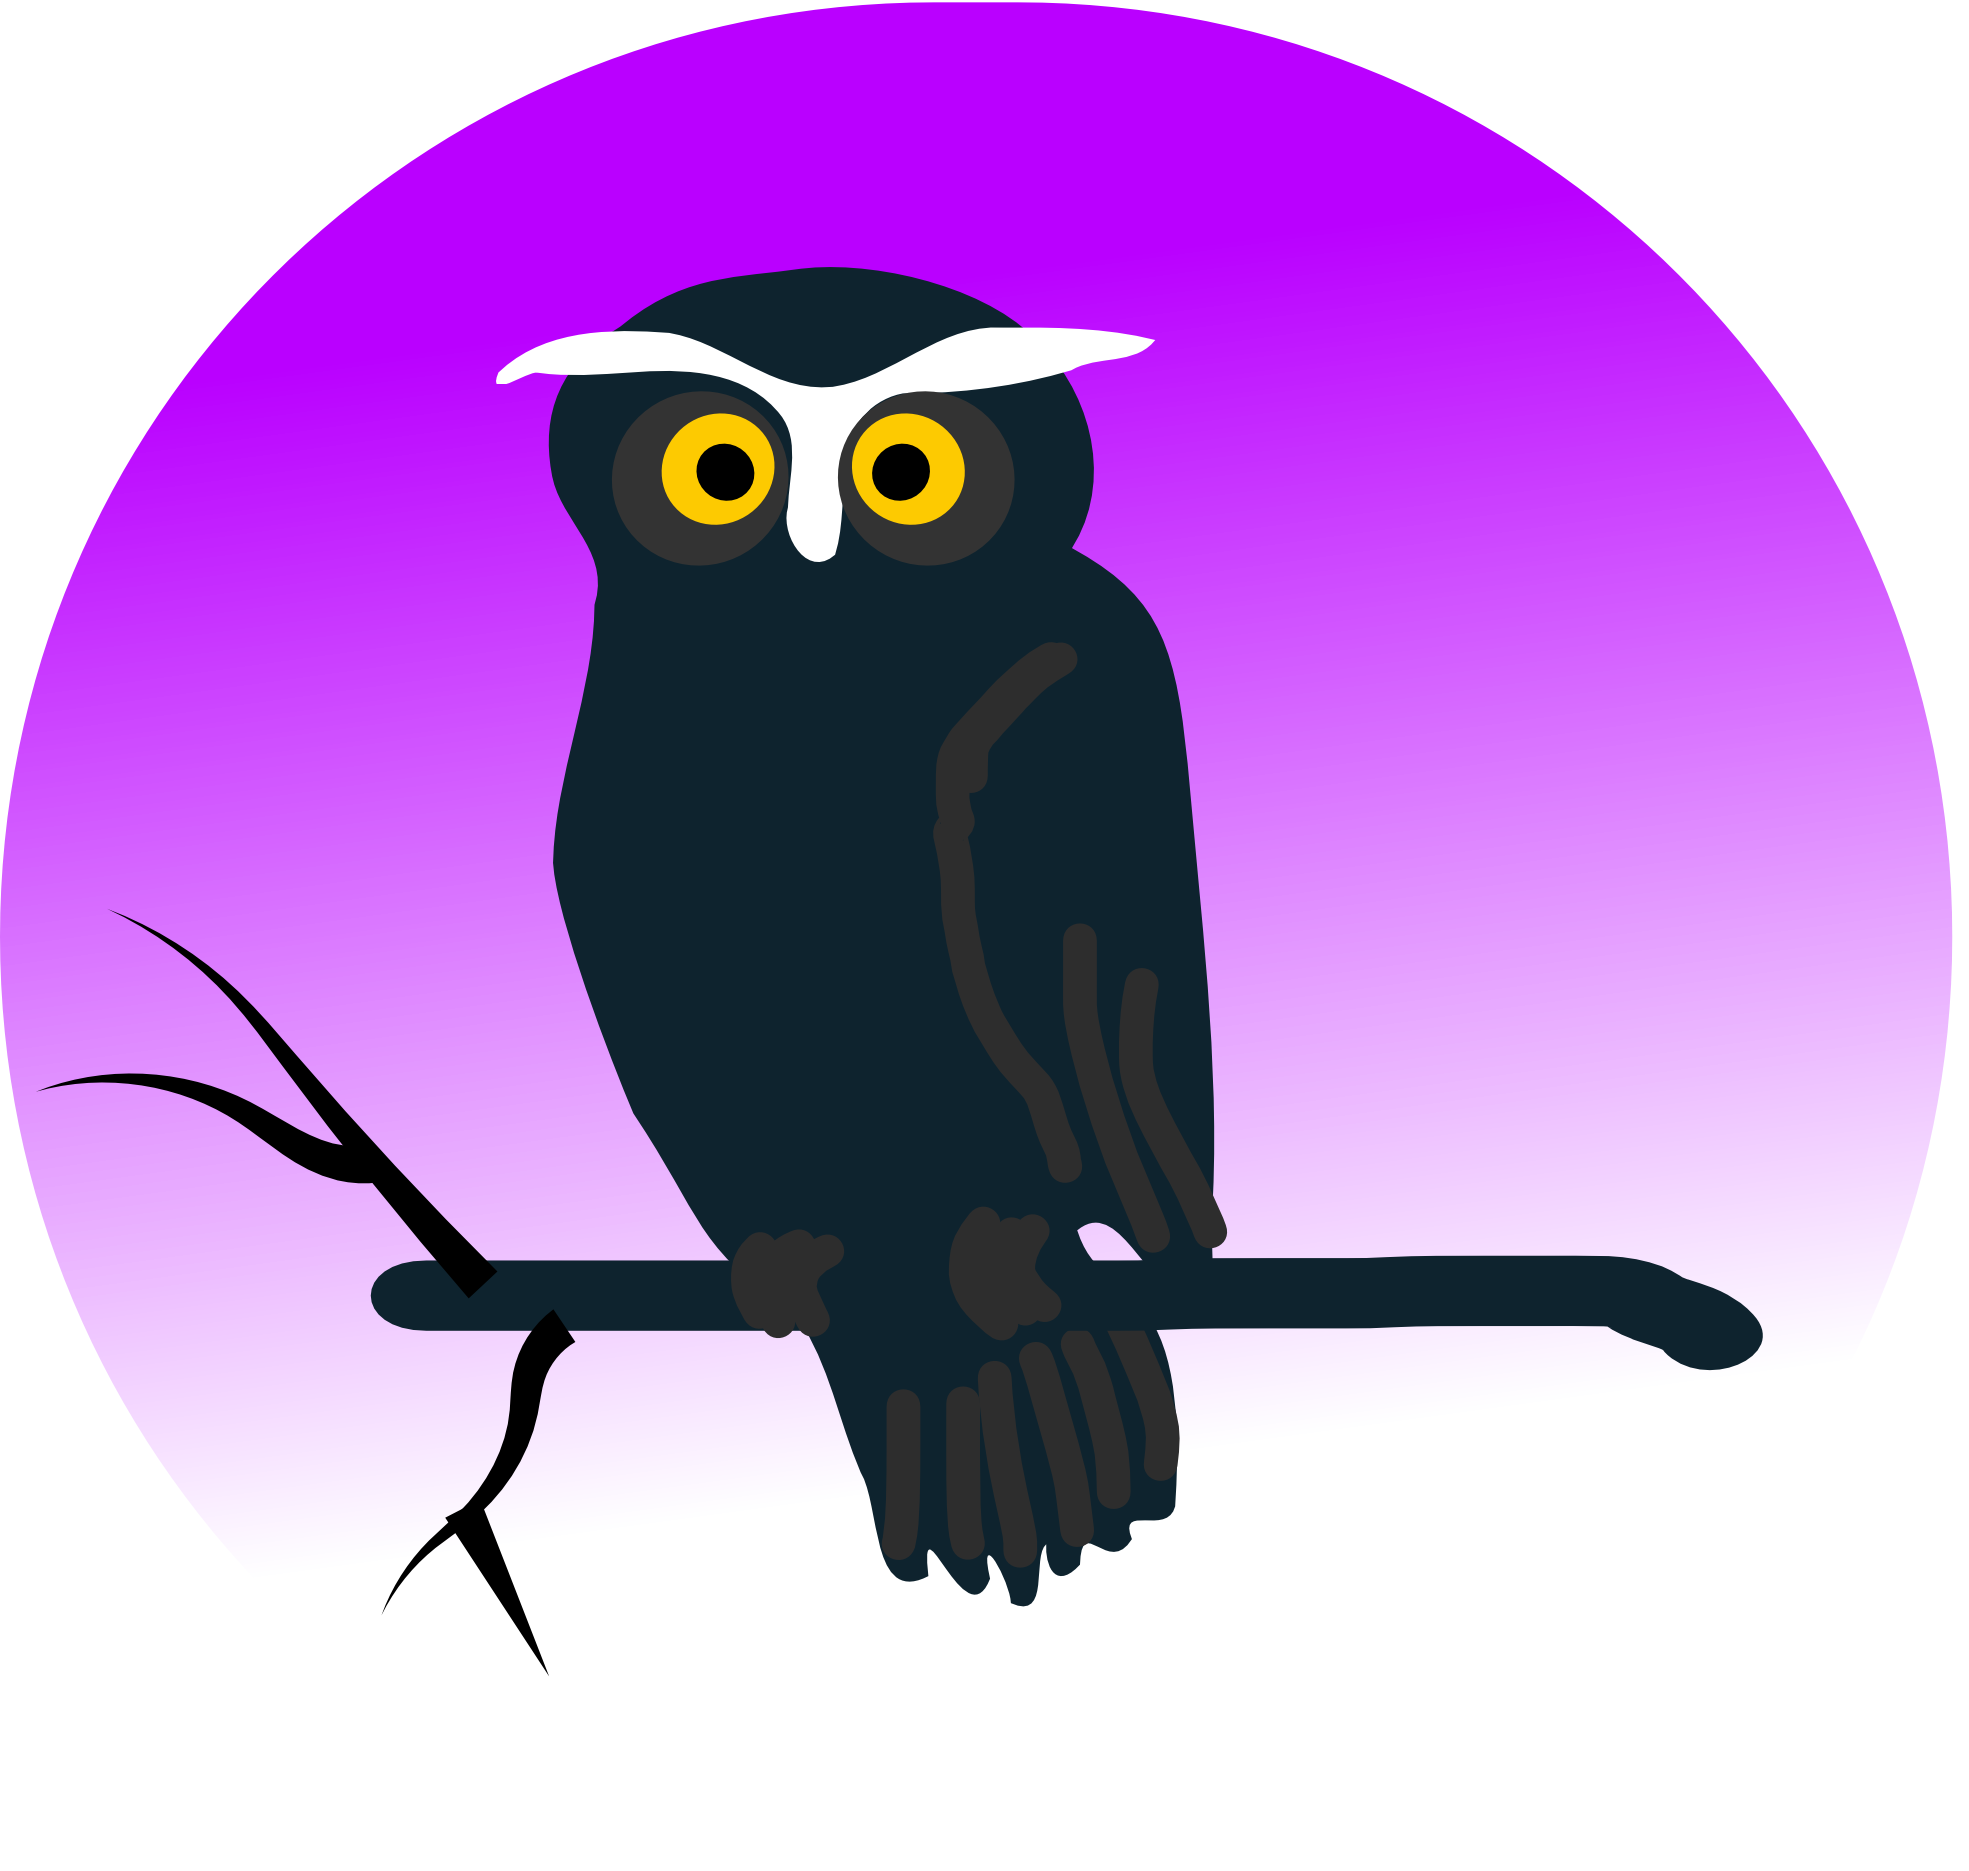 Halloween panda free images. Witch clipart owl